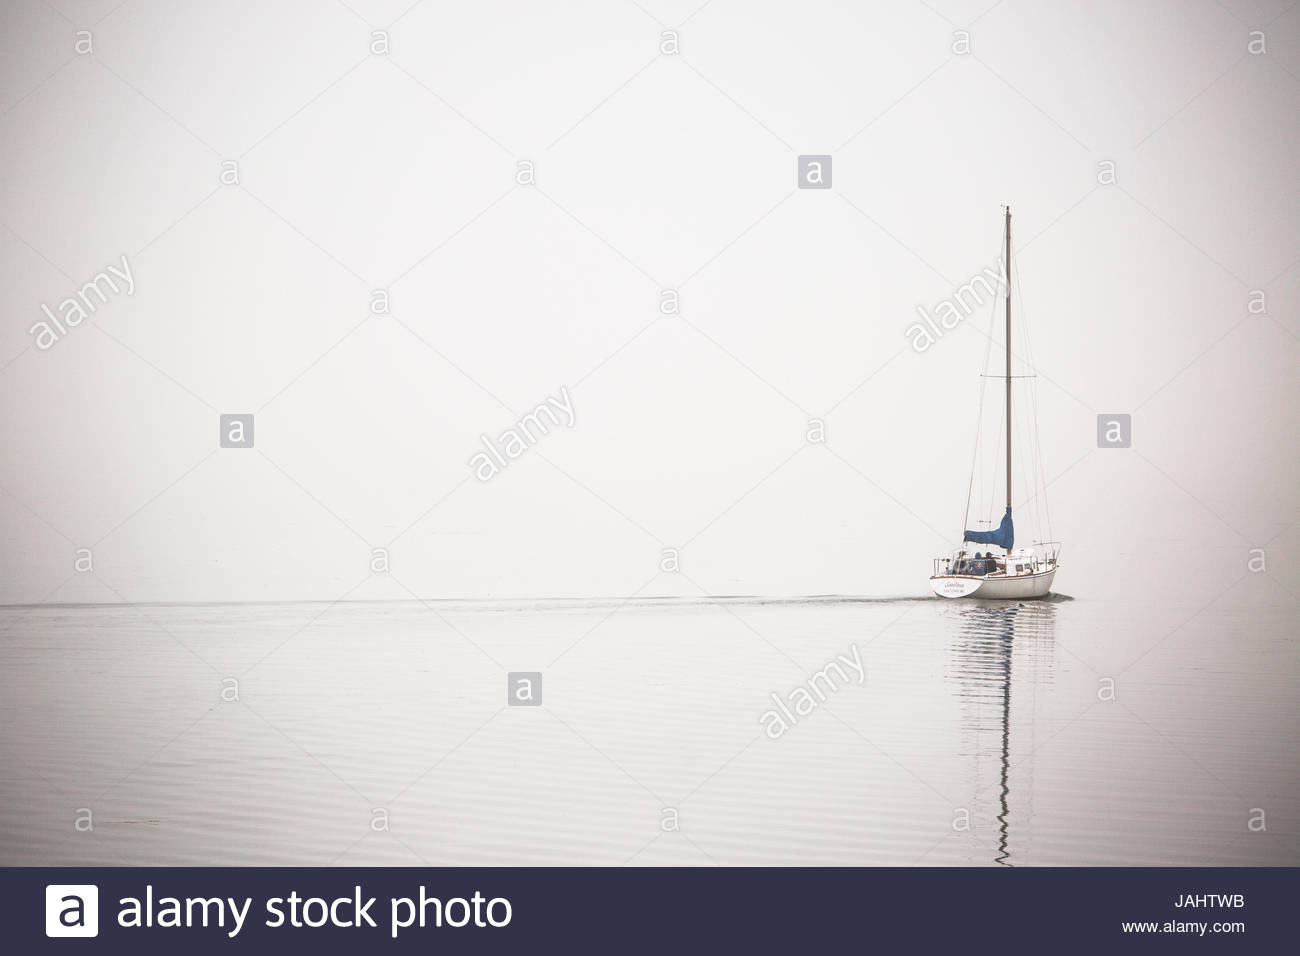 A lone sailboat motors through morning fog on the Occoquan River, near the Potomac River. - Stock Image